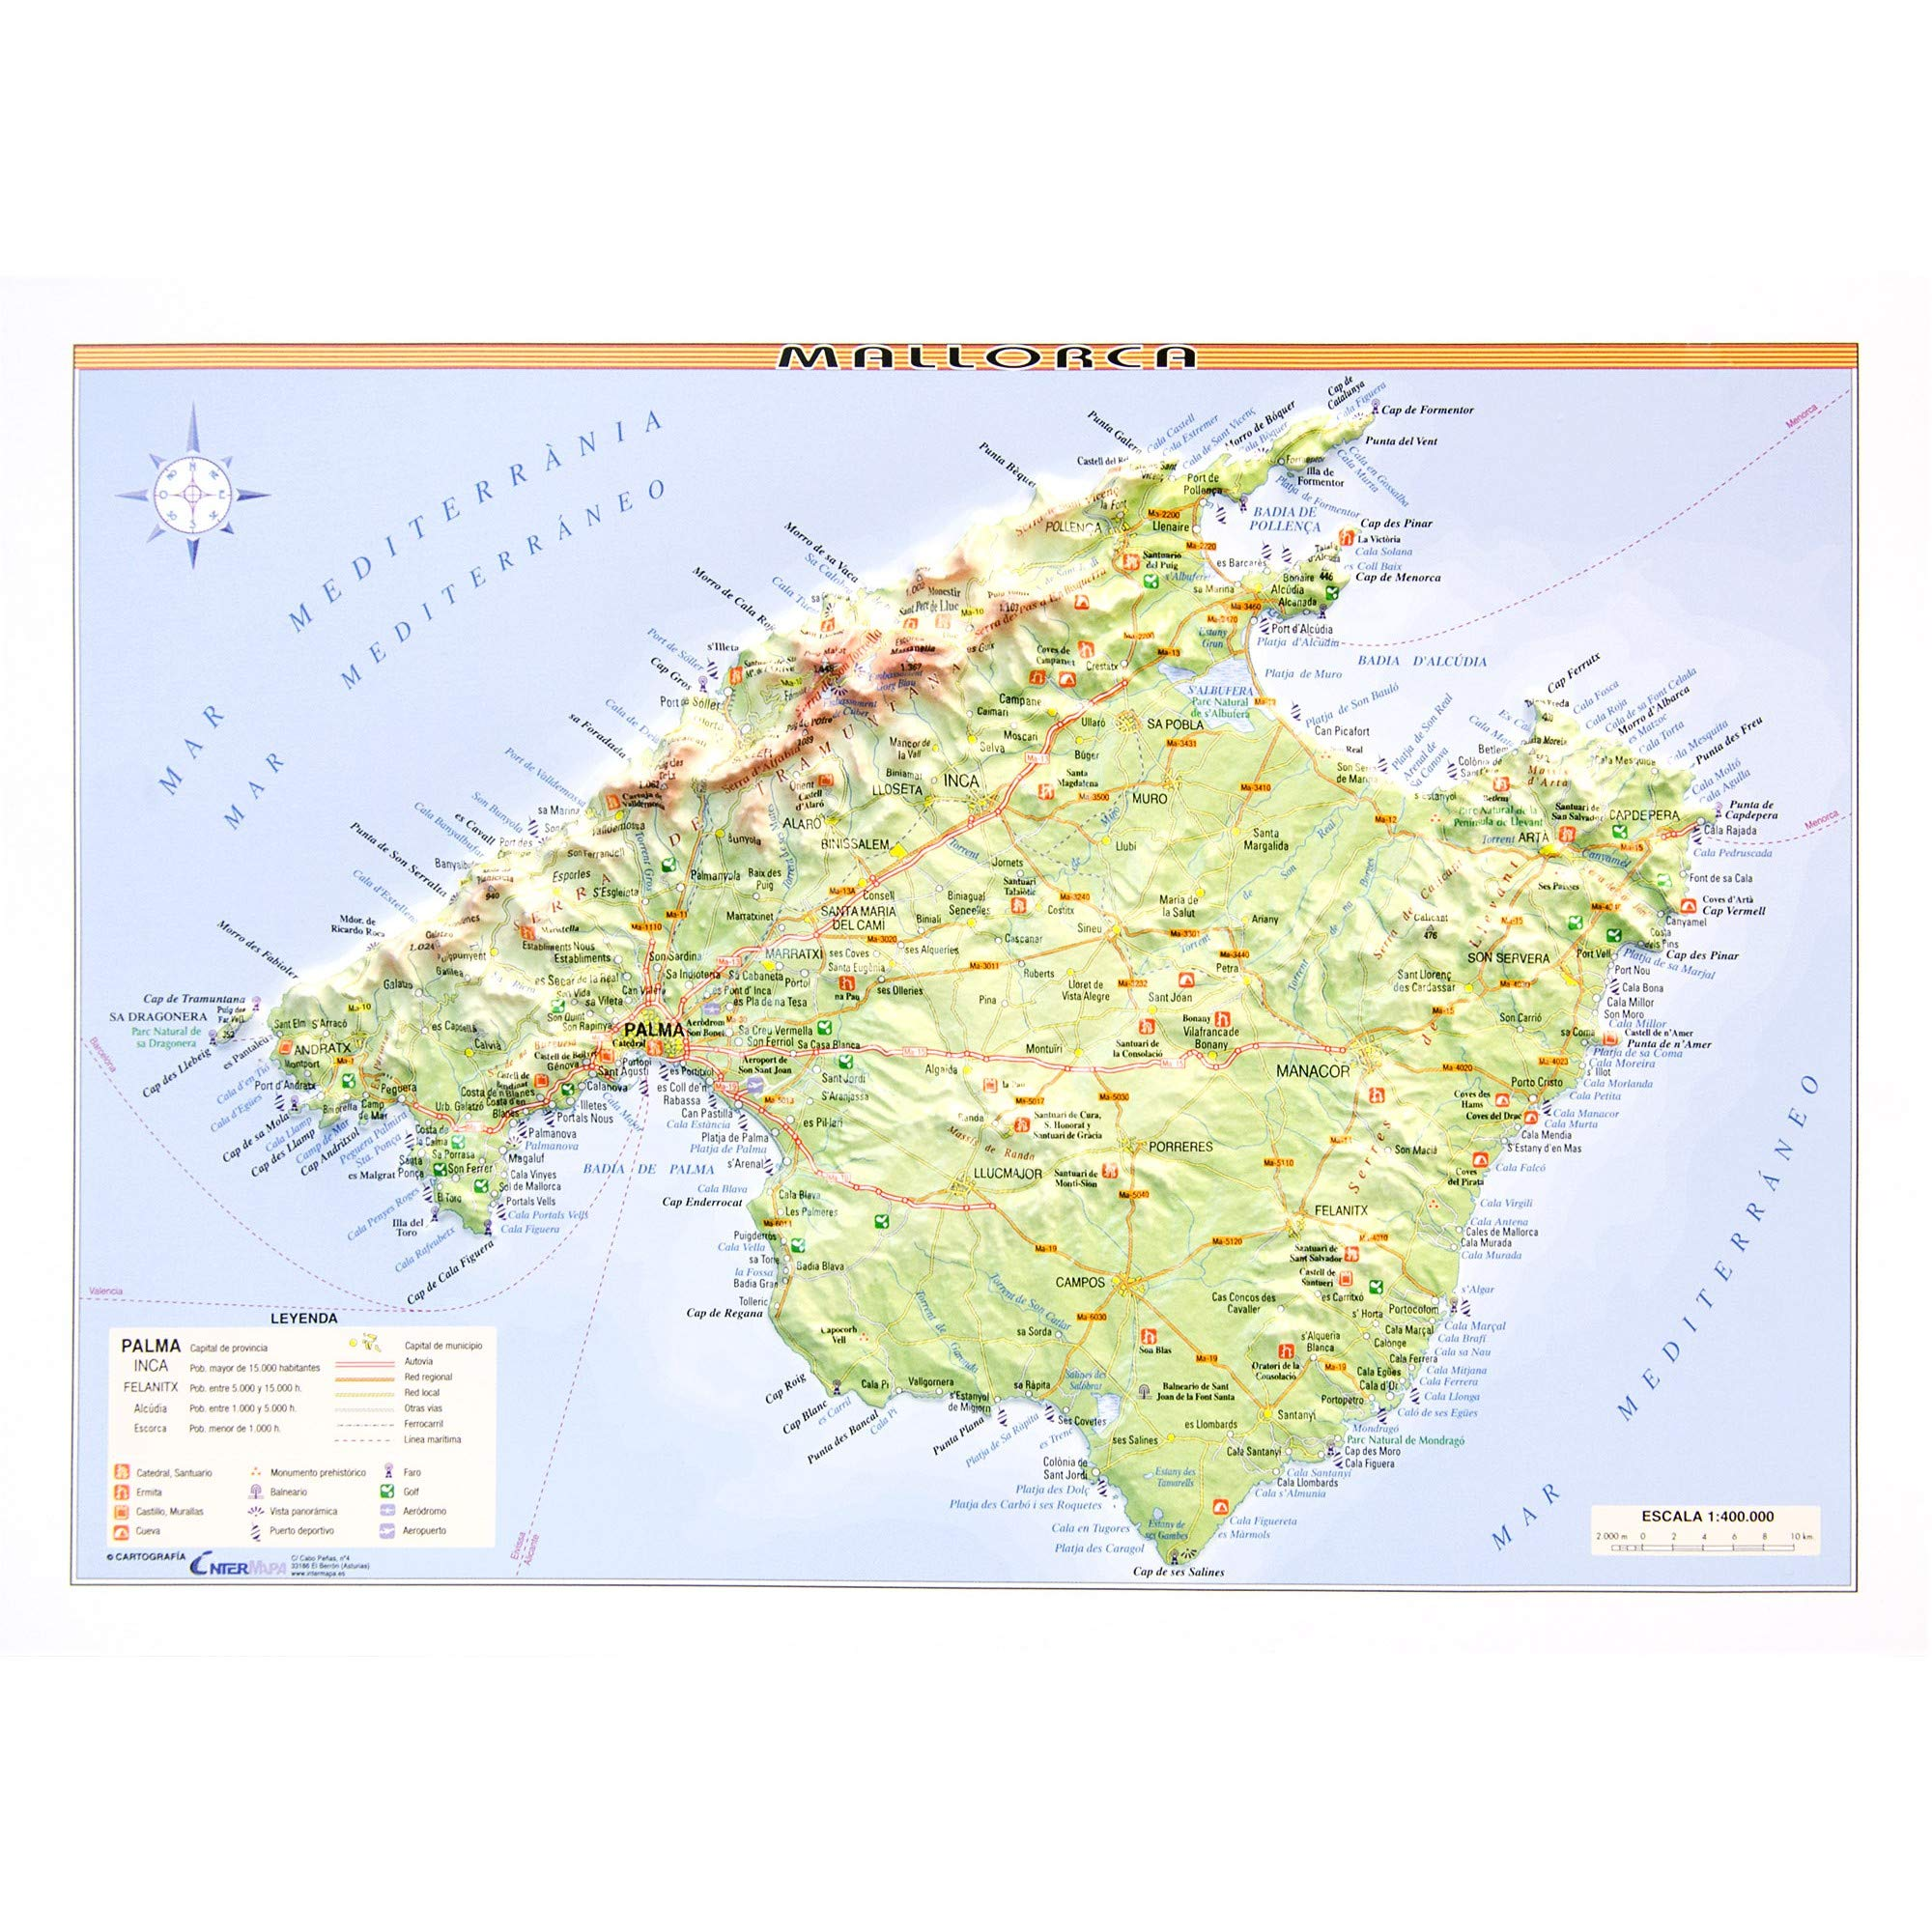 Mapa en relieve de Mallorca: Escala 1:400.000: Amazon.es: All 3D ...